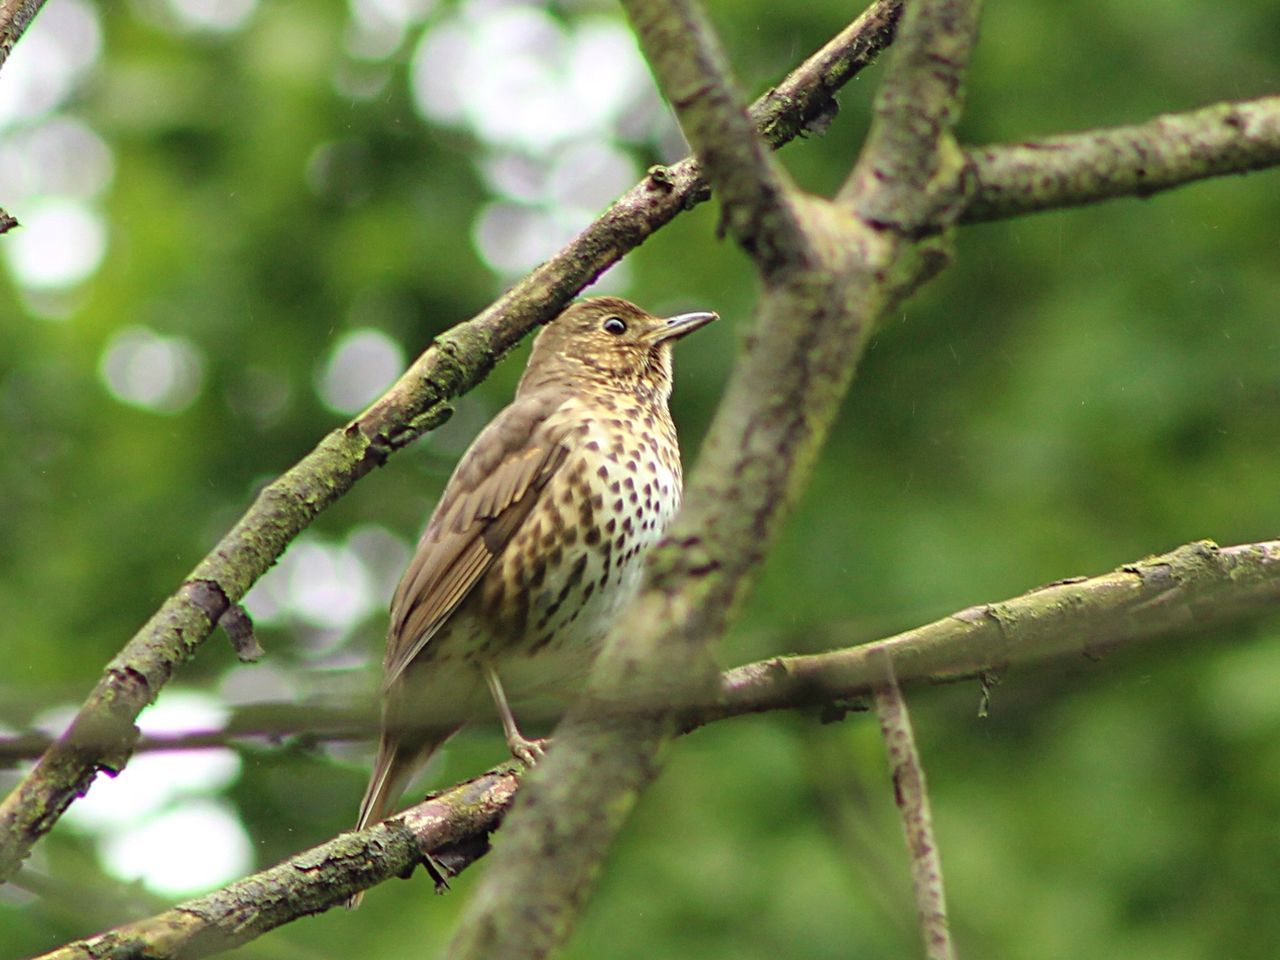 Thrush Springwatch Naturelovers Nature_collection Birds Wildlife Wildlife Photography Birds Of EyeEm  Bird Photography